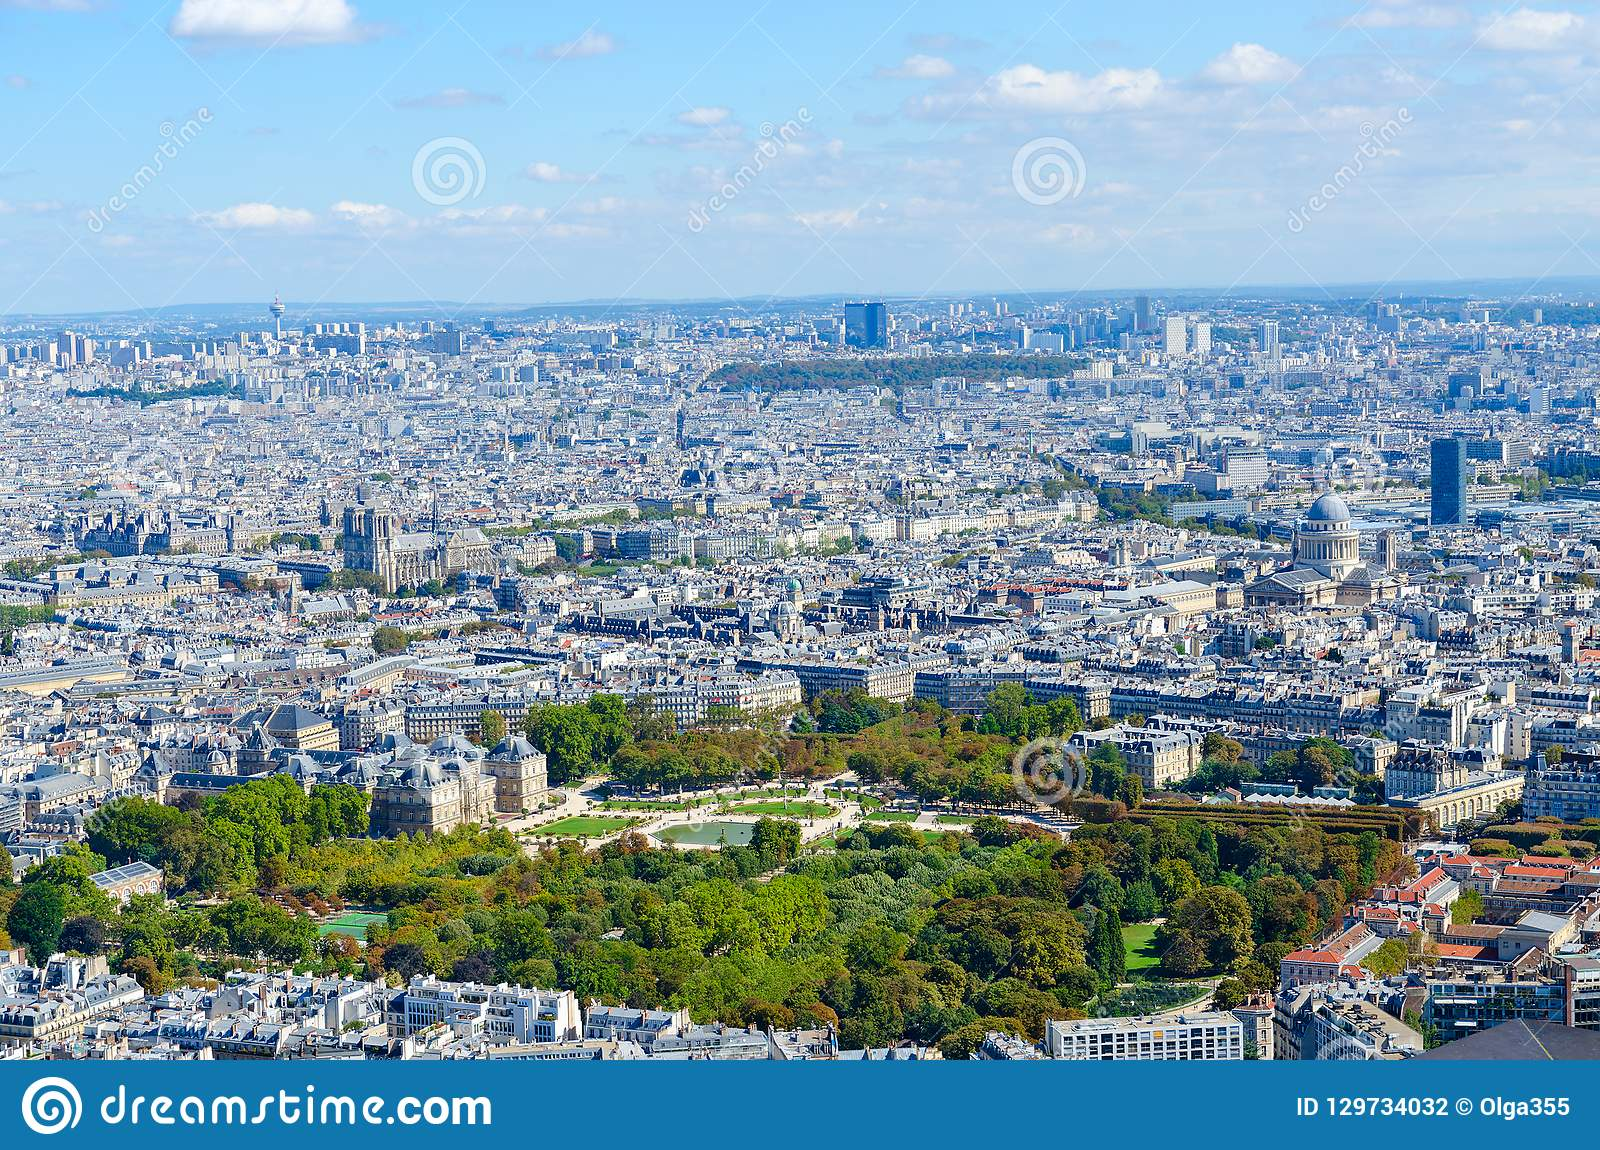 Scenic view from above on Luxembourg Garden, Paris, France